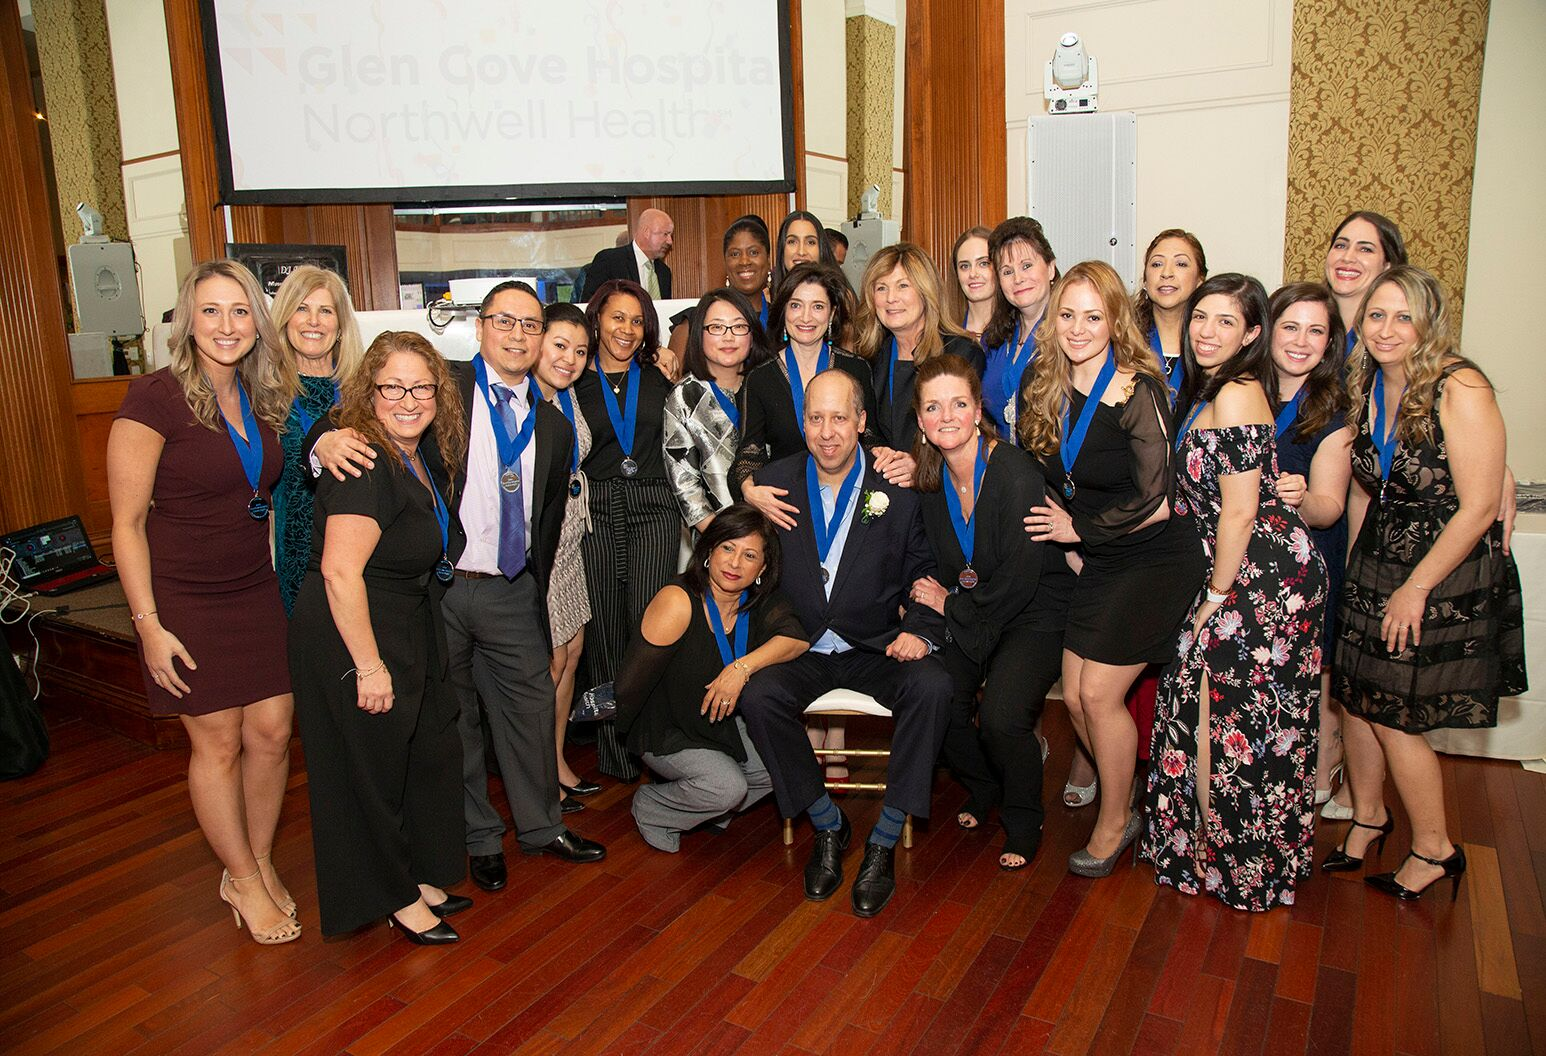 A group of smiling people wearing blue ribbon medals surround a man who is sitting in the middle. Image Caption: Jay's whole team came out to honor him at Glen Cove Hospital's Heroes Night.